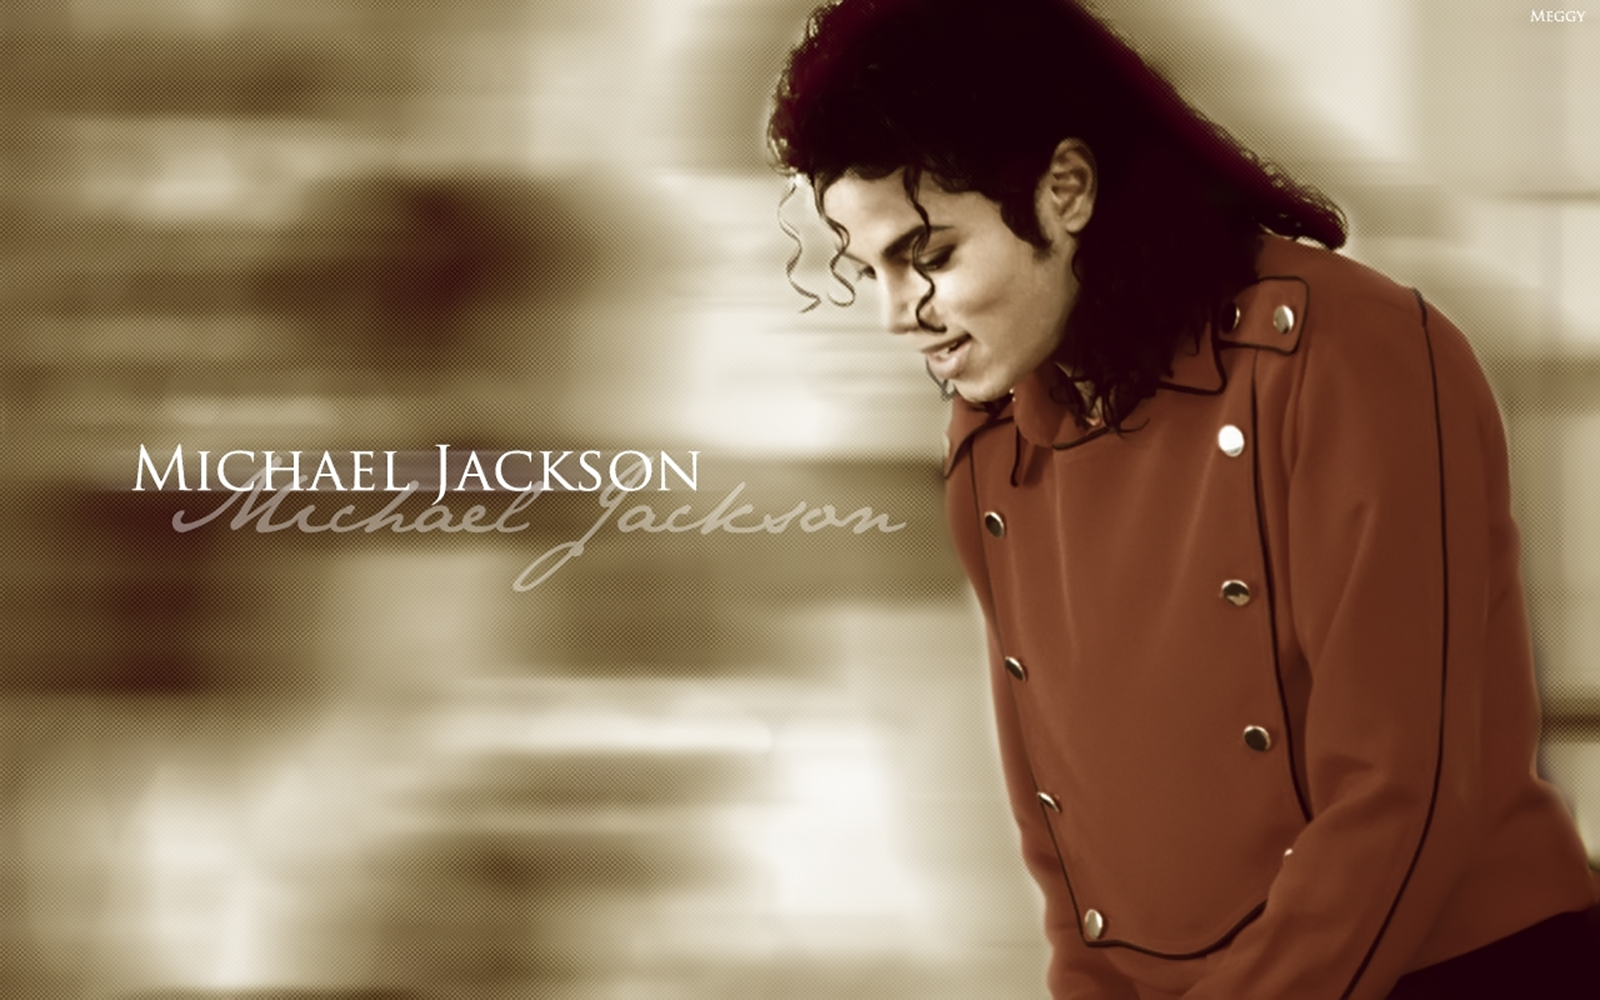 hollywood michael jackson hd wallpaper best for desktop